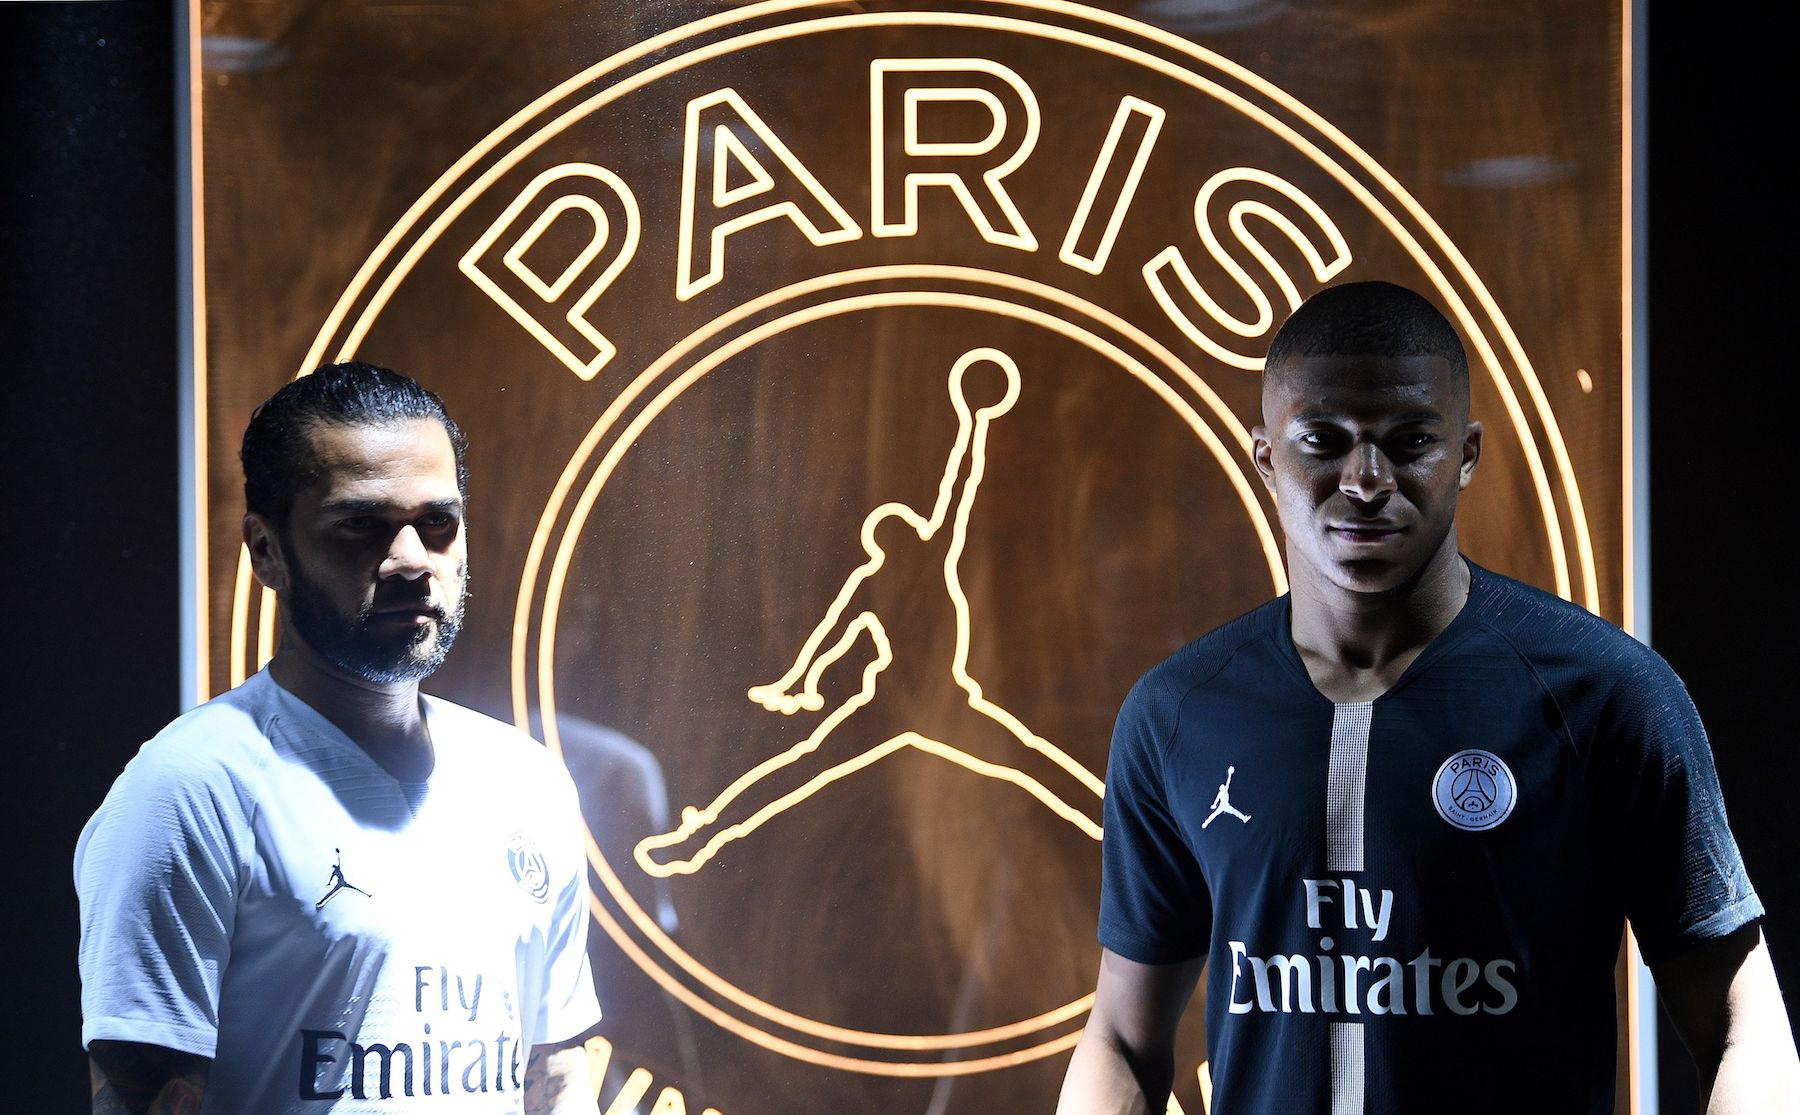 What Does PSG's Partnership With Jordan Brand Mean? - PSG Talk